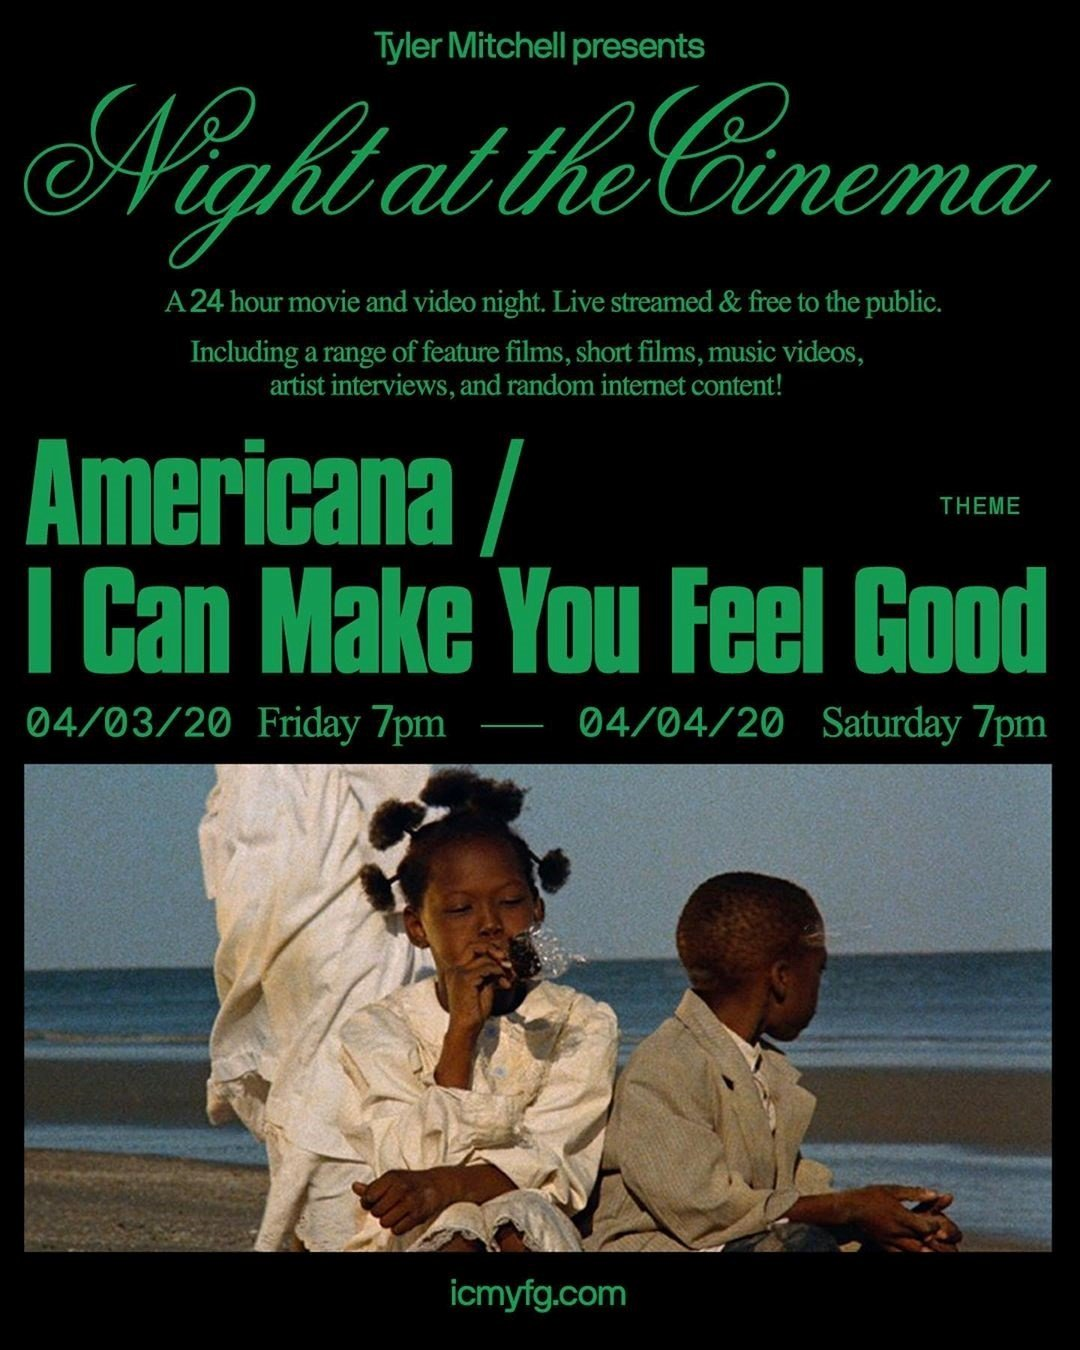 griot mag tyler mitchell night at cinema festival